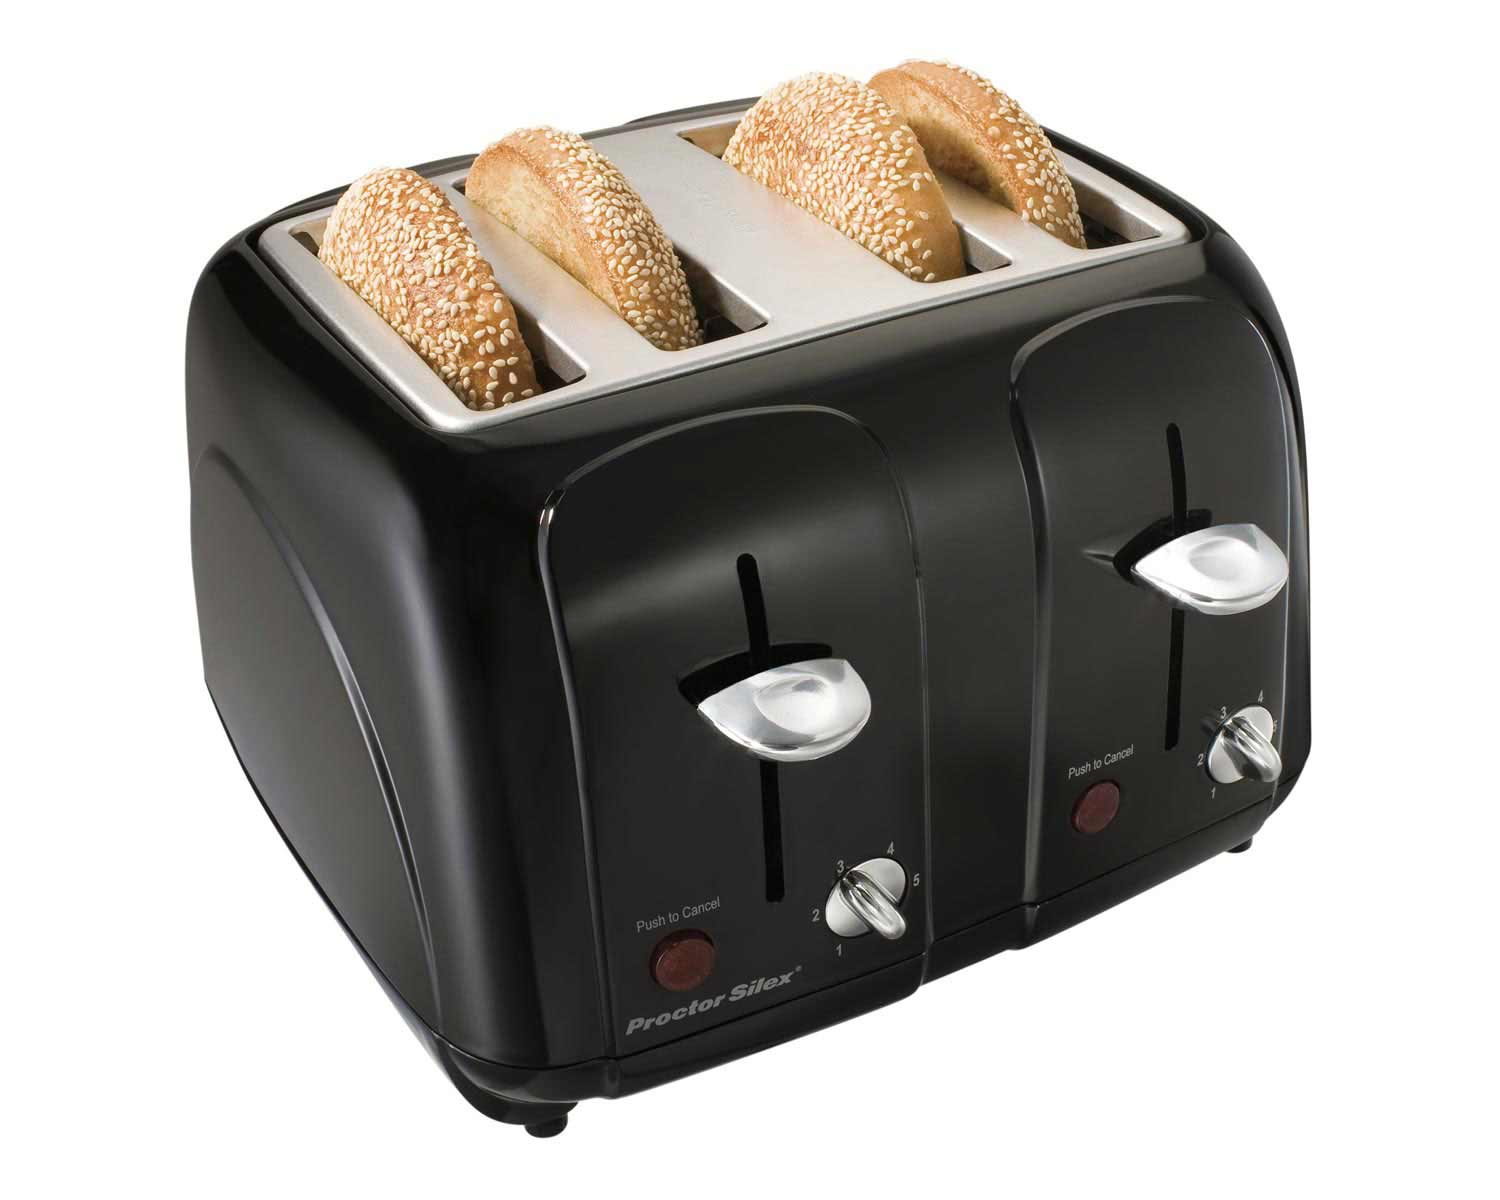 Cool-Touch 4 Slice Toaster (black)